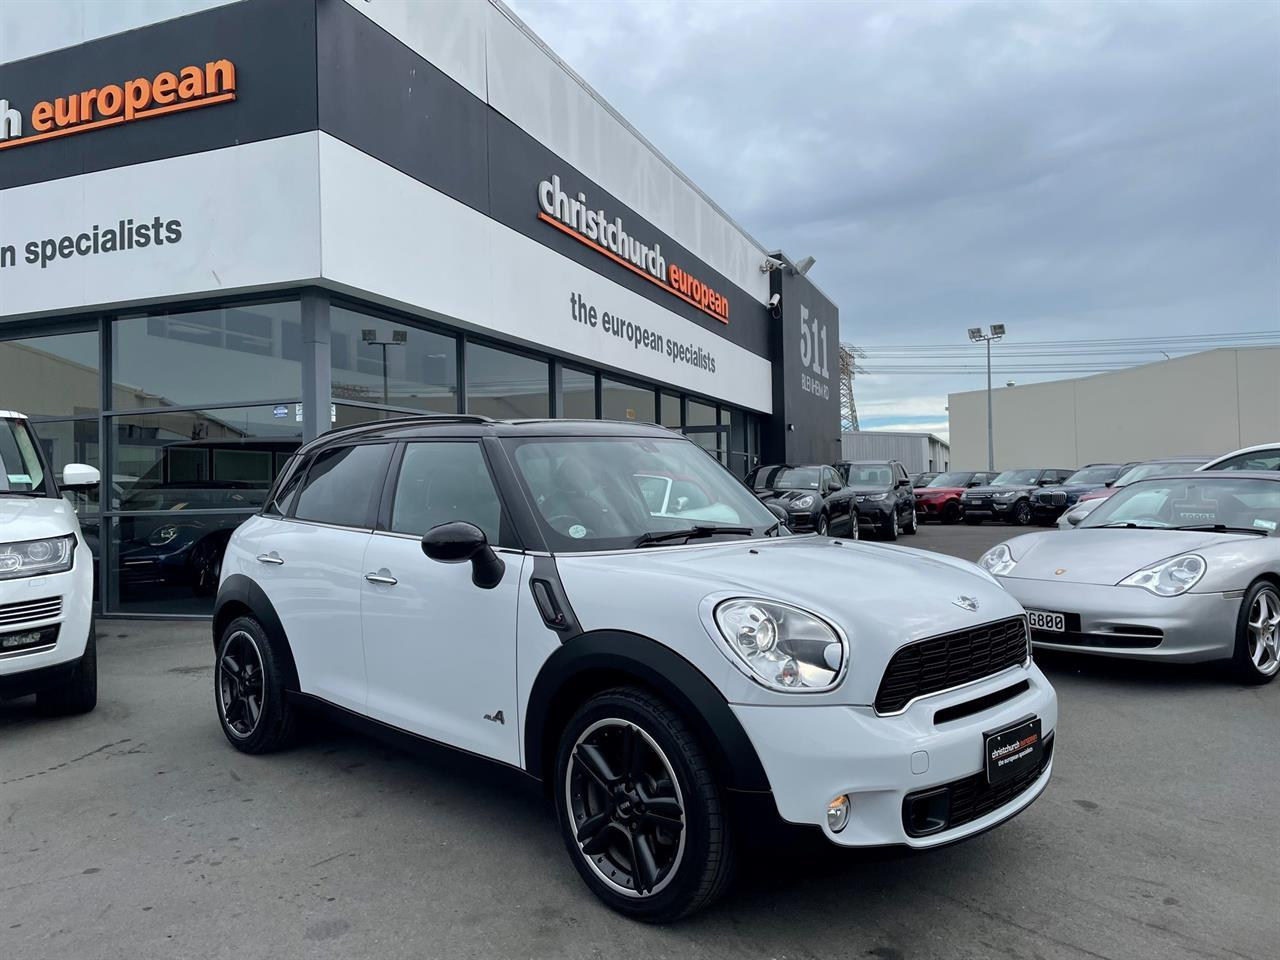 image-0, 2011 Mini Cooper S ALL4 AWD Crossover at Christchurch